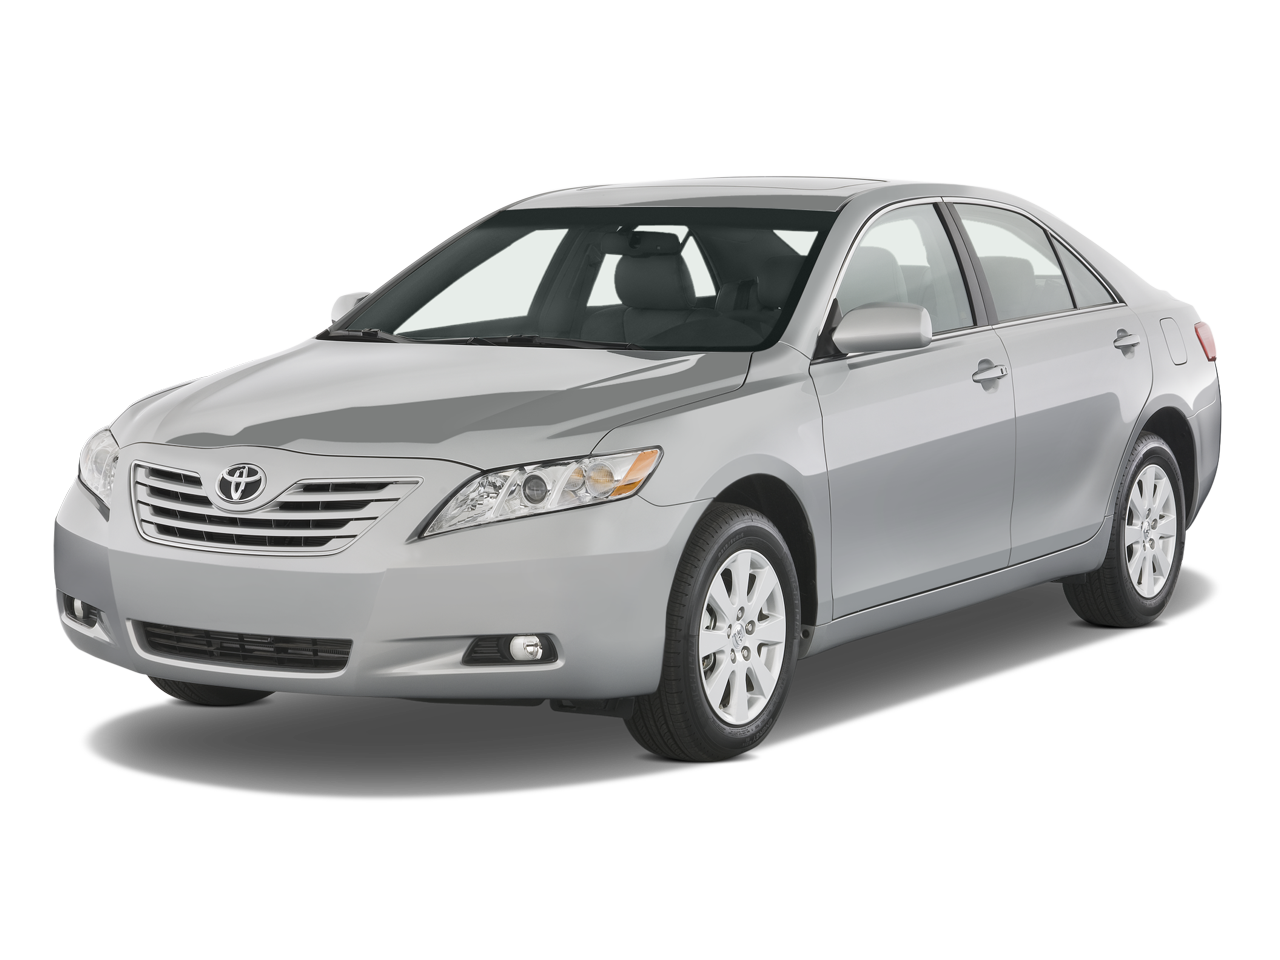 2009 toyota camry hybrid toyota hybrid sedan review. Black Bedroom Furniture Sets. Home Design Ideas